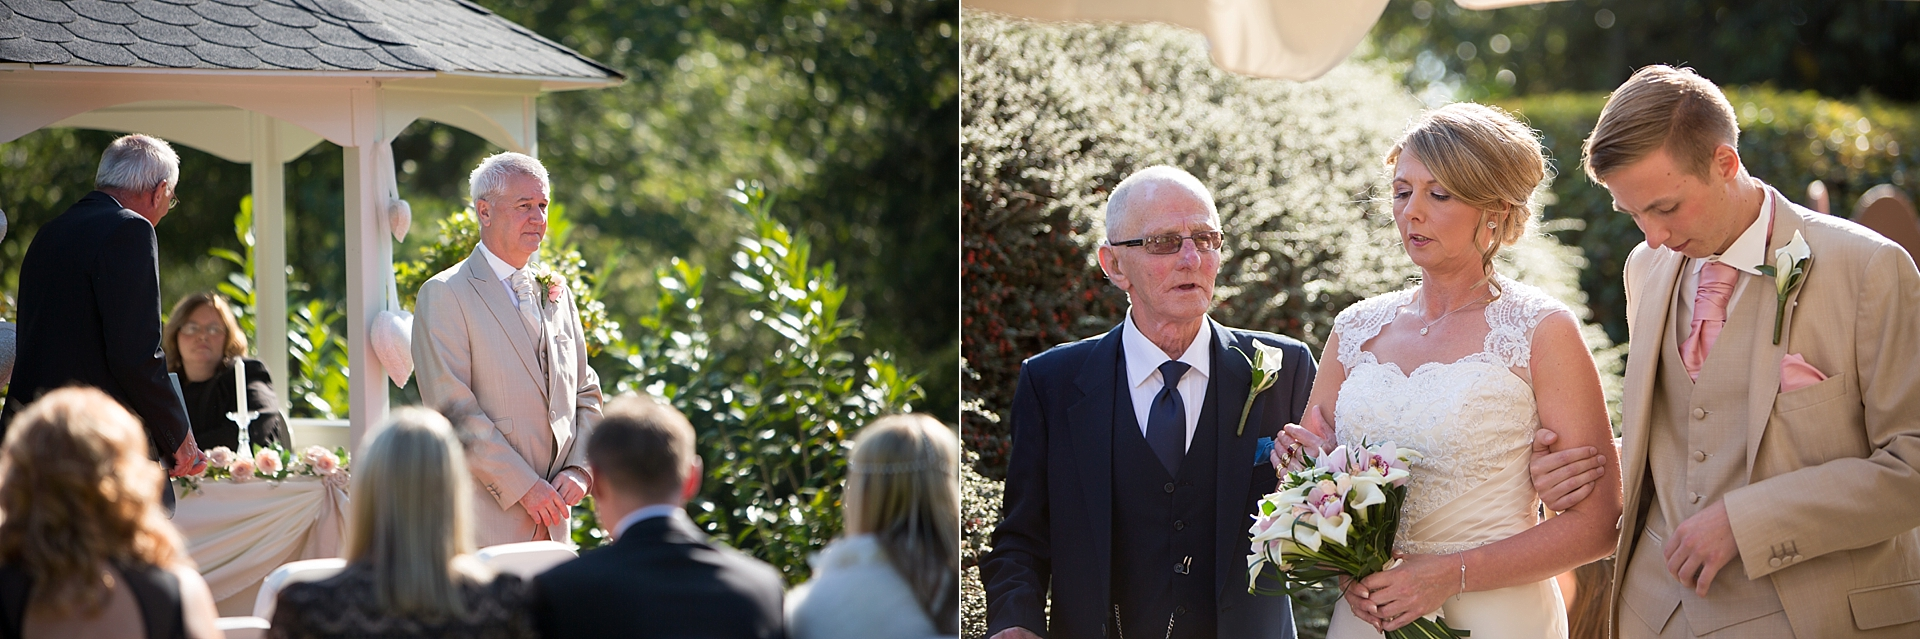 wedding photographer cranage hall cheshire 9.jpg